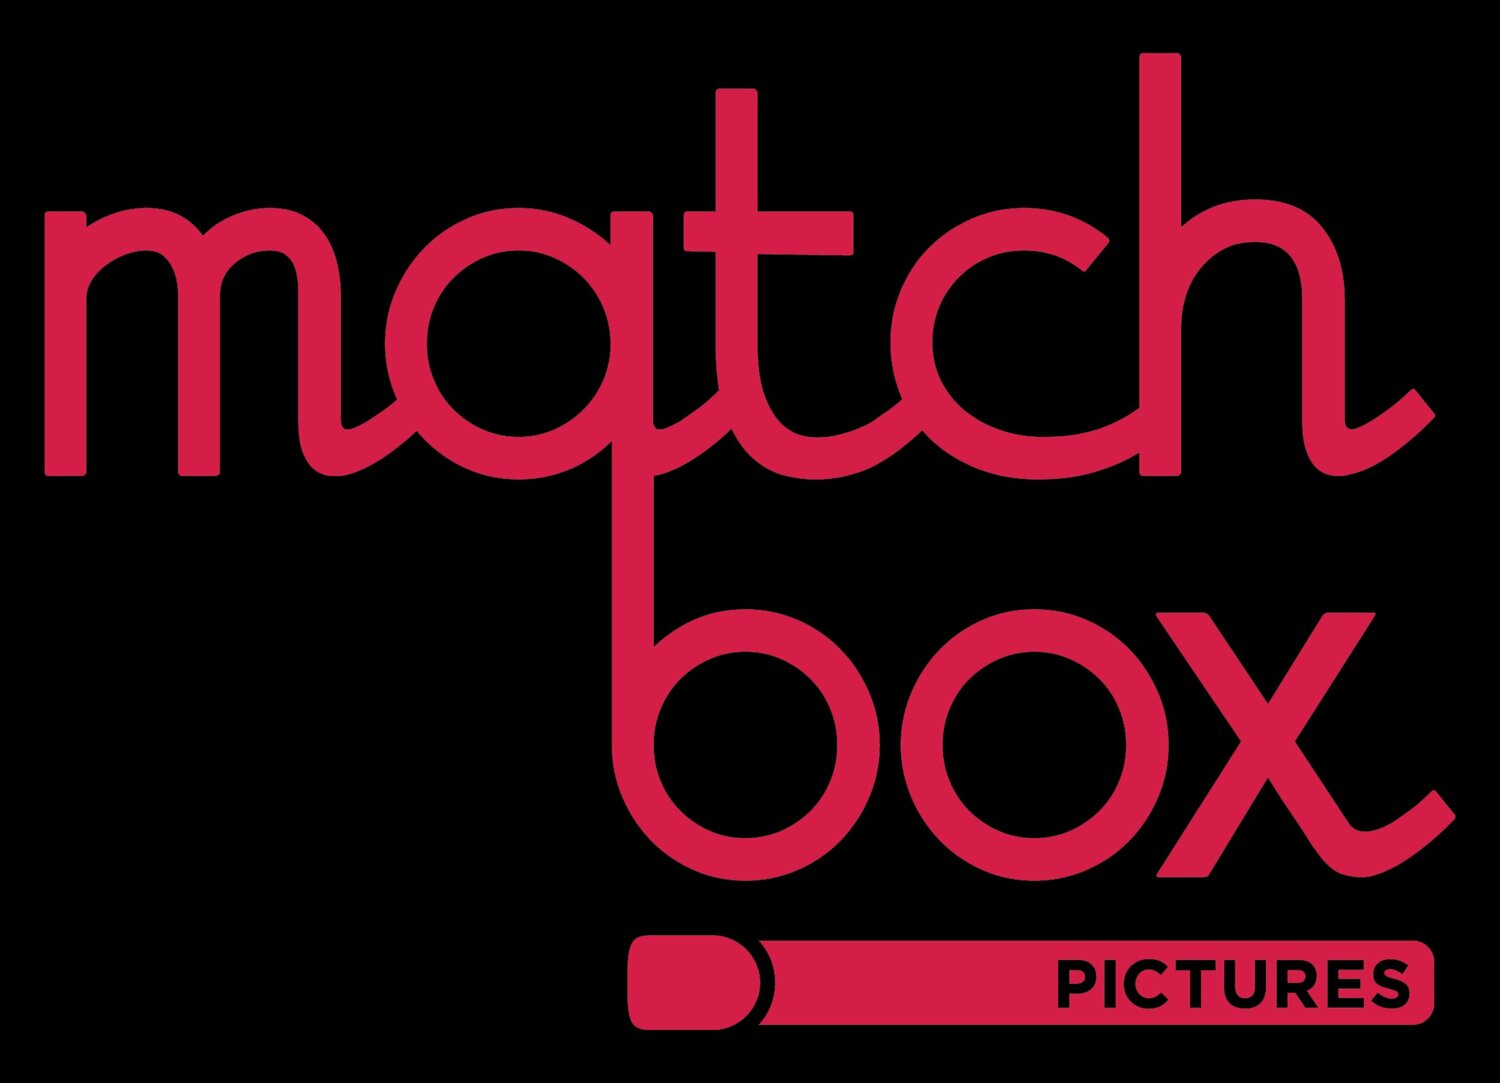 Matchbox Pictures